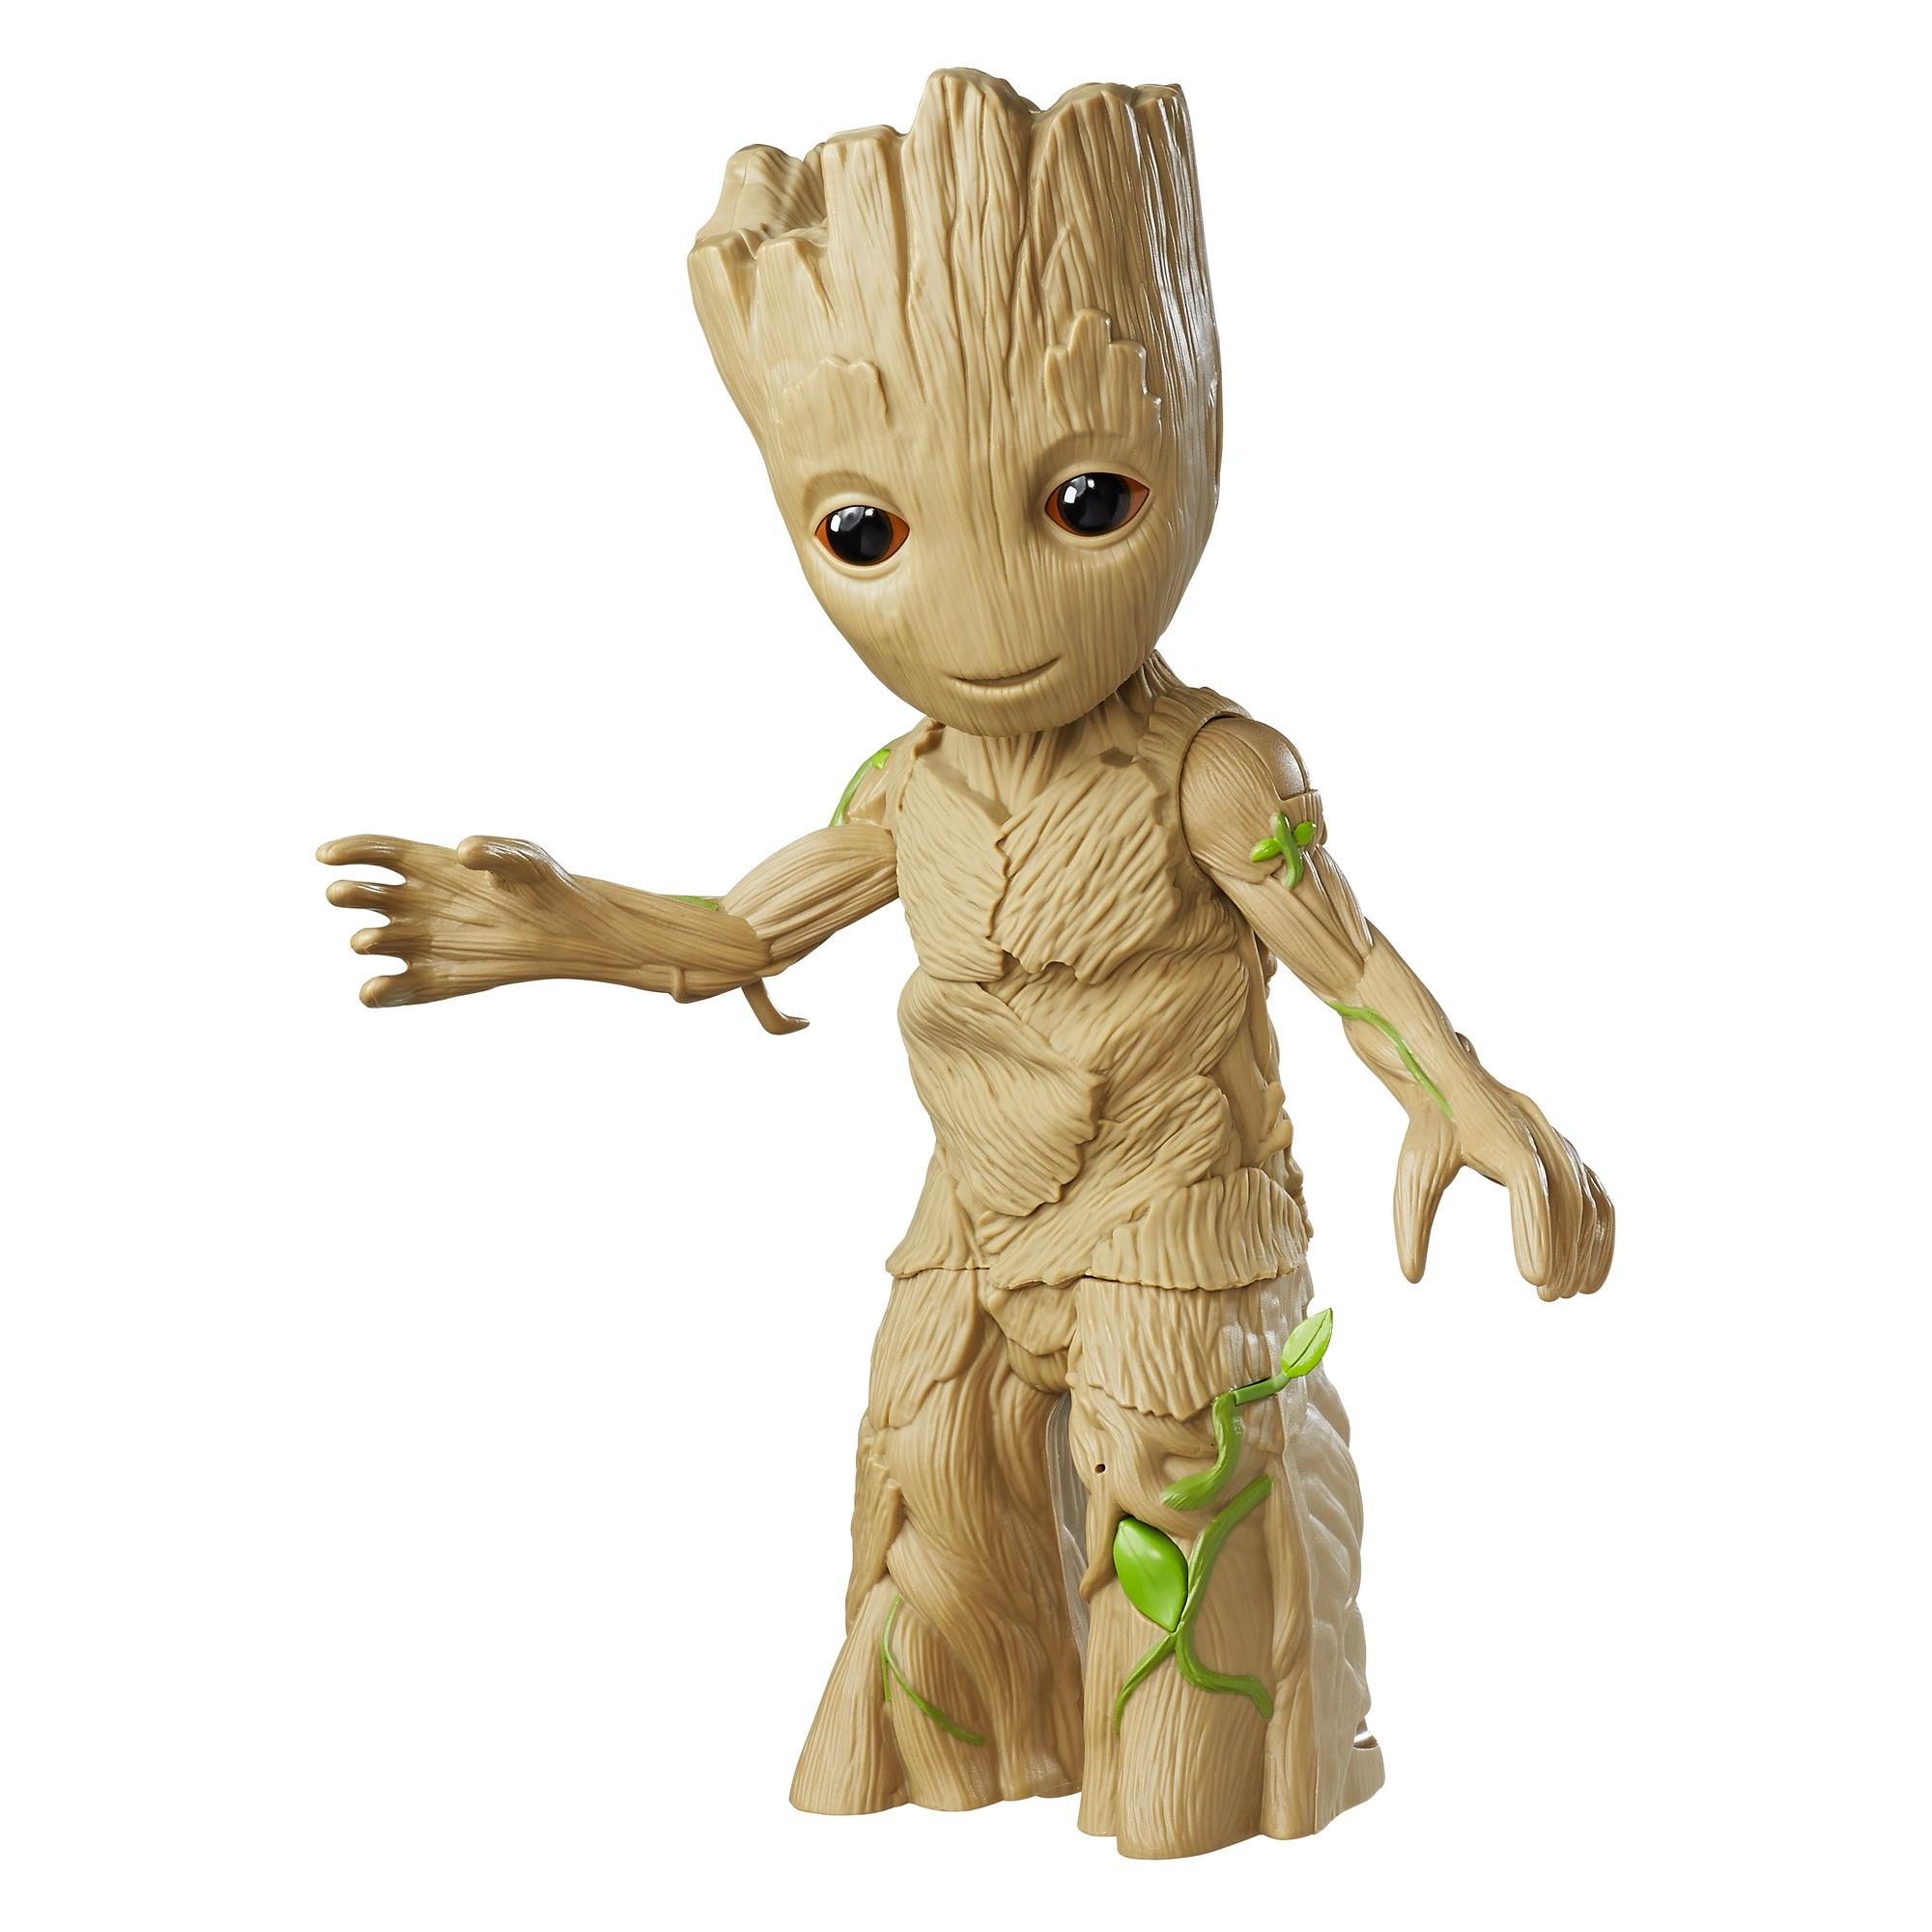 Marvel Guardians of the Galaxy Groot Bailarín